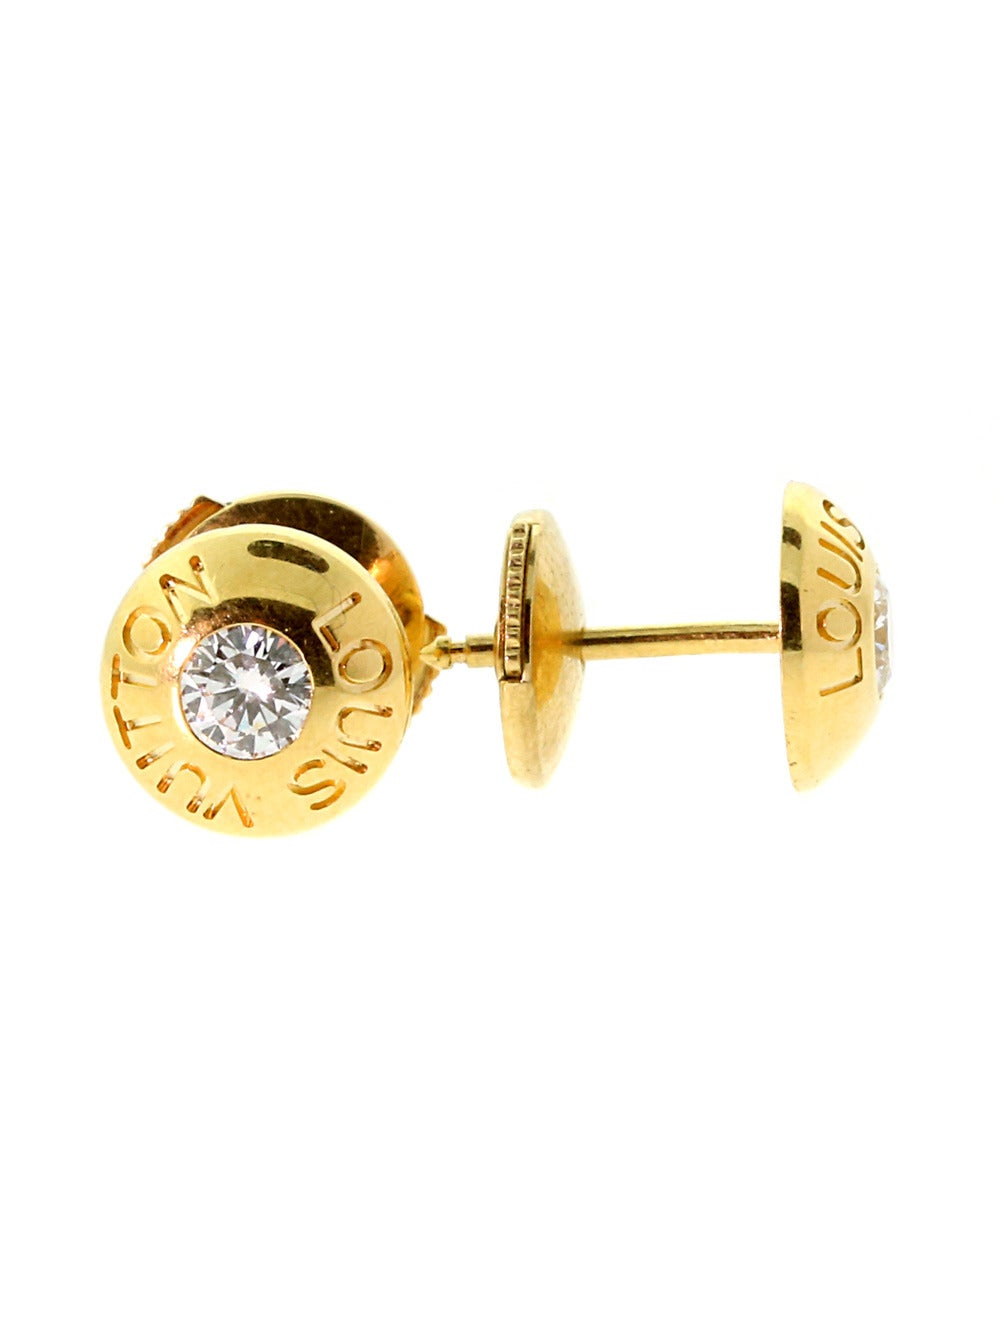 louis vuitton earrings mens louis vuitton gold stud earrings at 1stdibs 4434